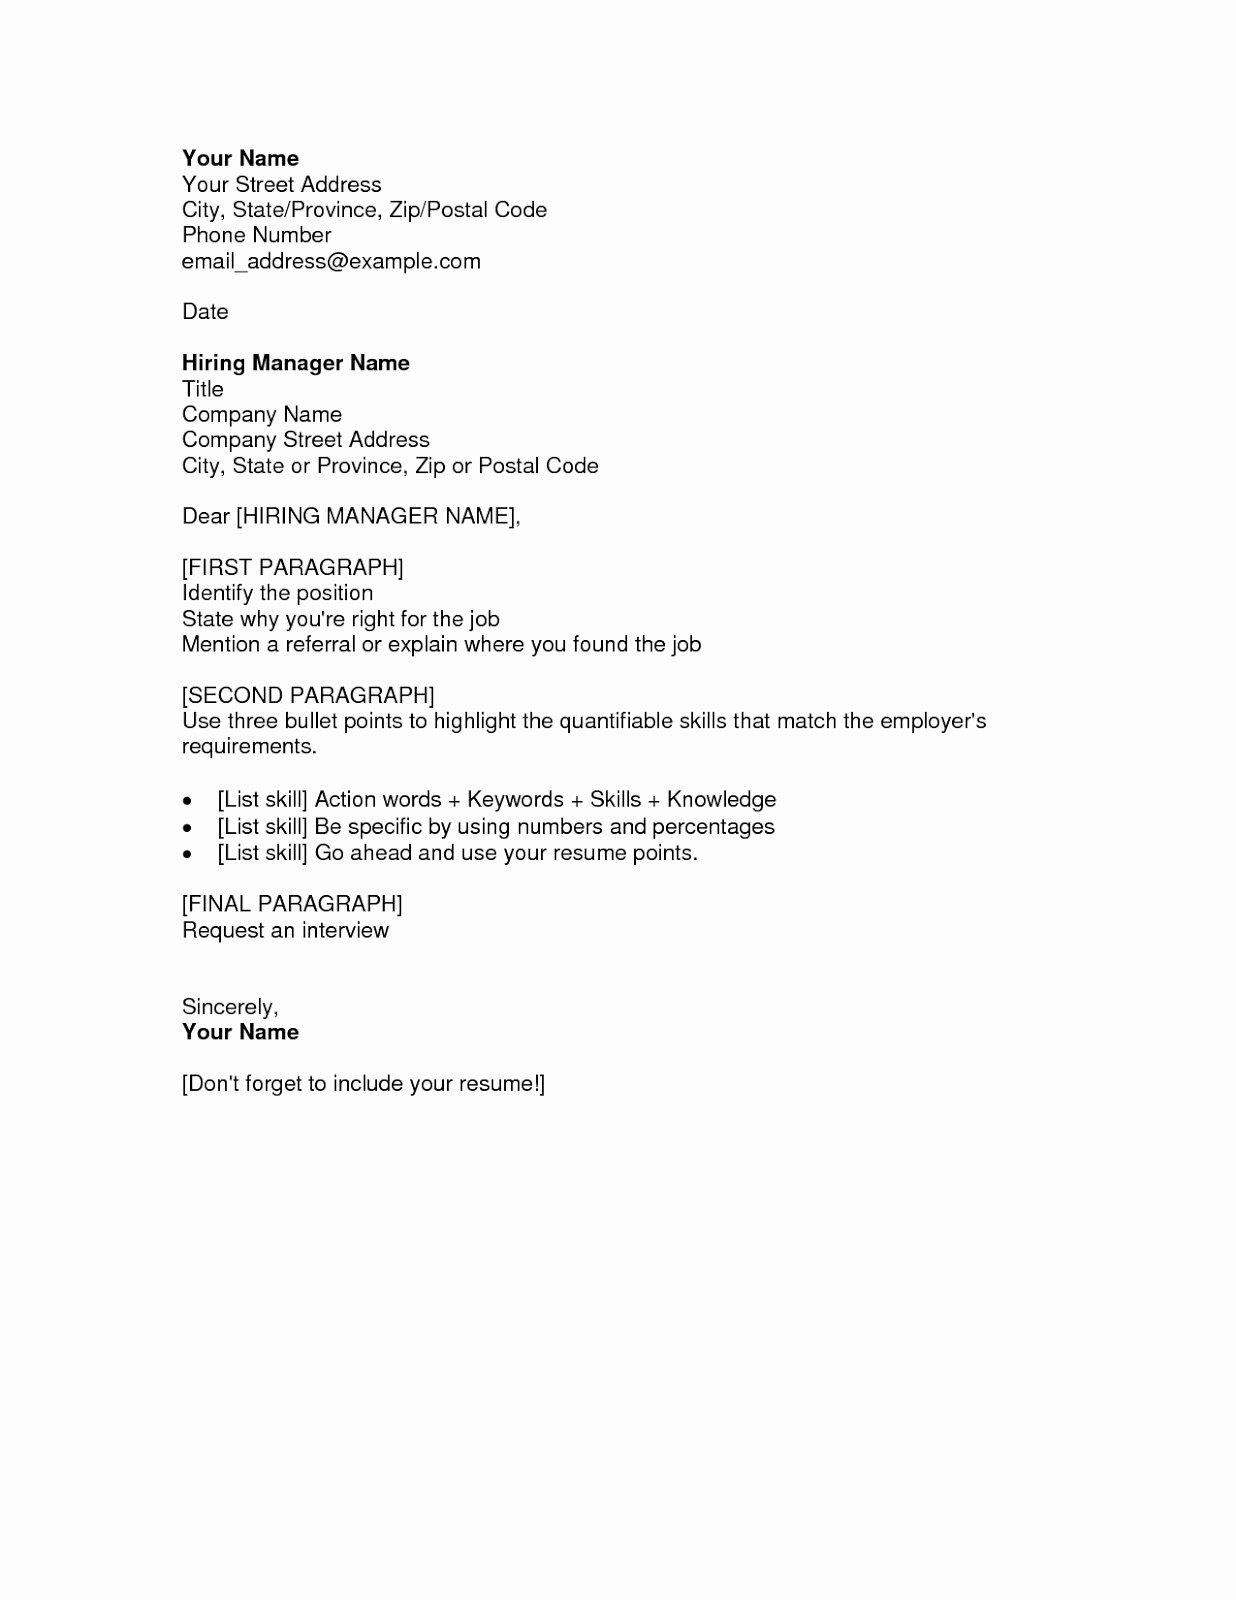 Free Job Cover Letter Template Inspirational Free Cover Letter Samples for Resumes